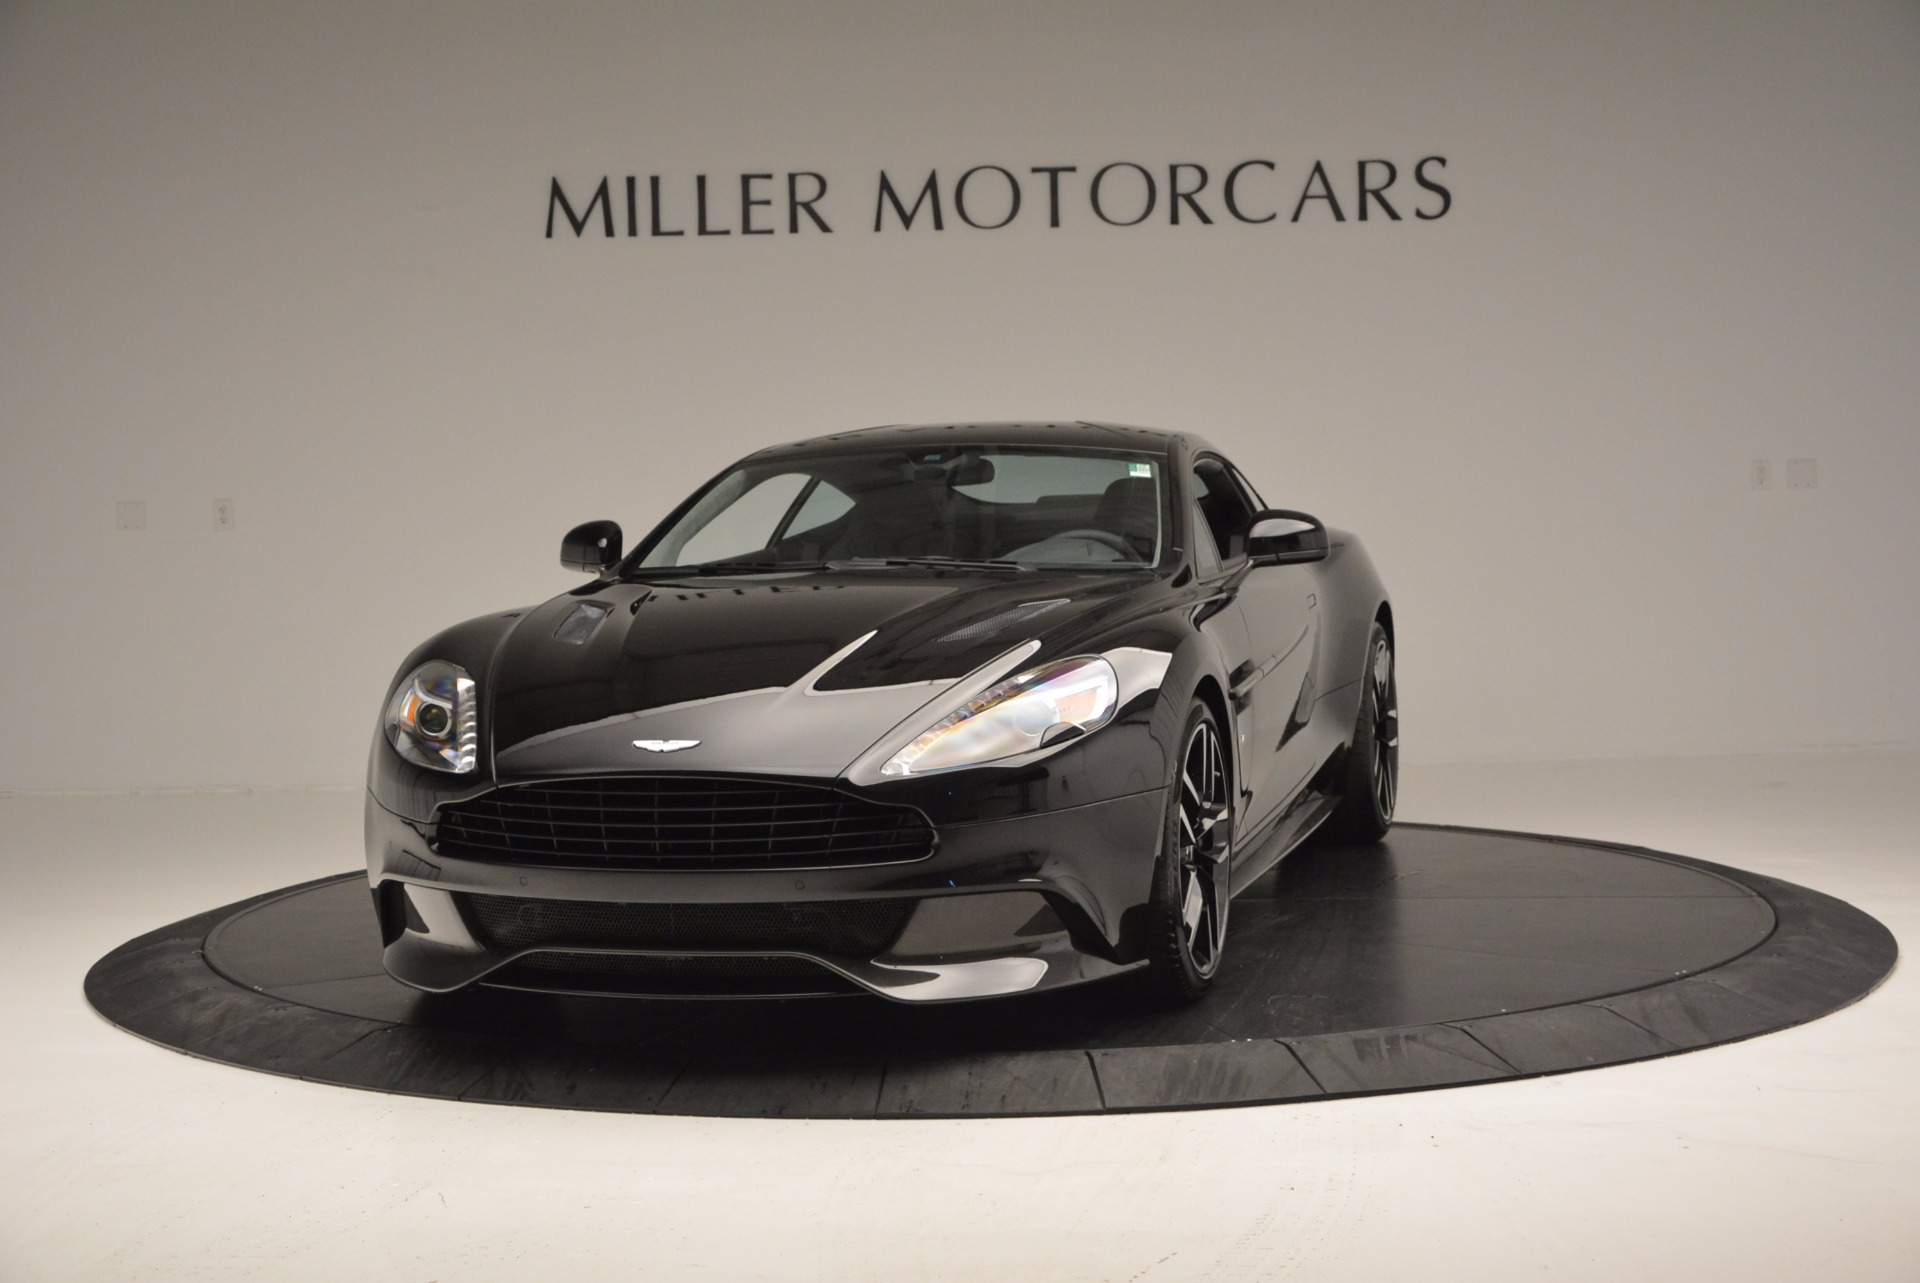 2017 aston martin vanquish 2-door coupe stock # a1195b for sale near